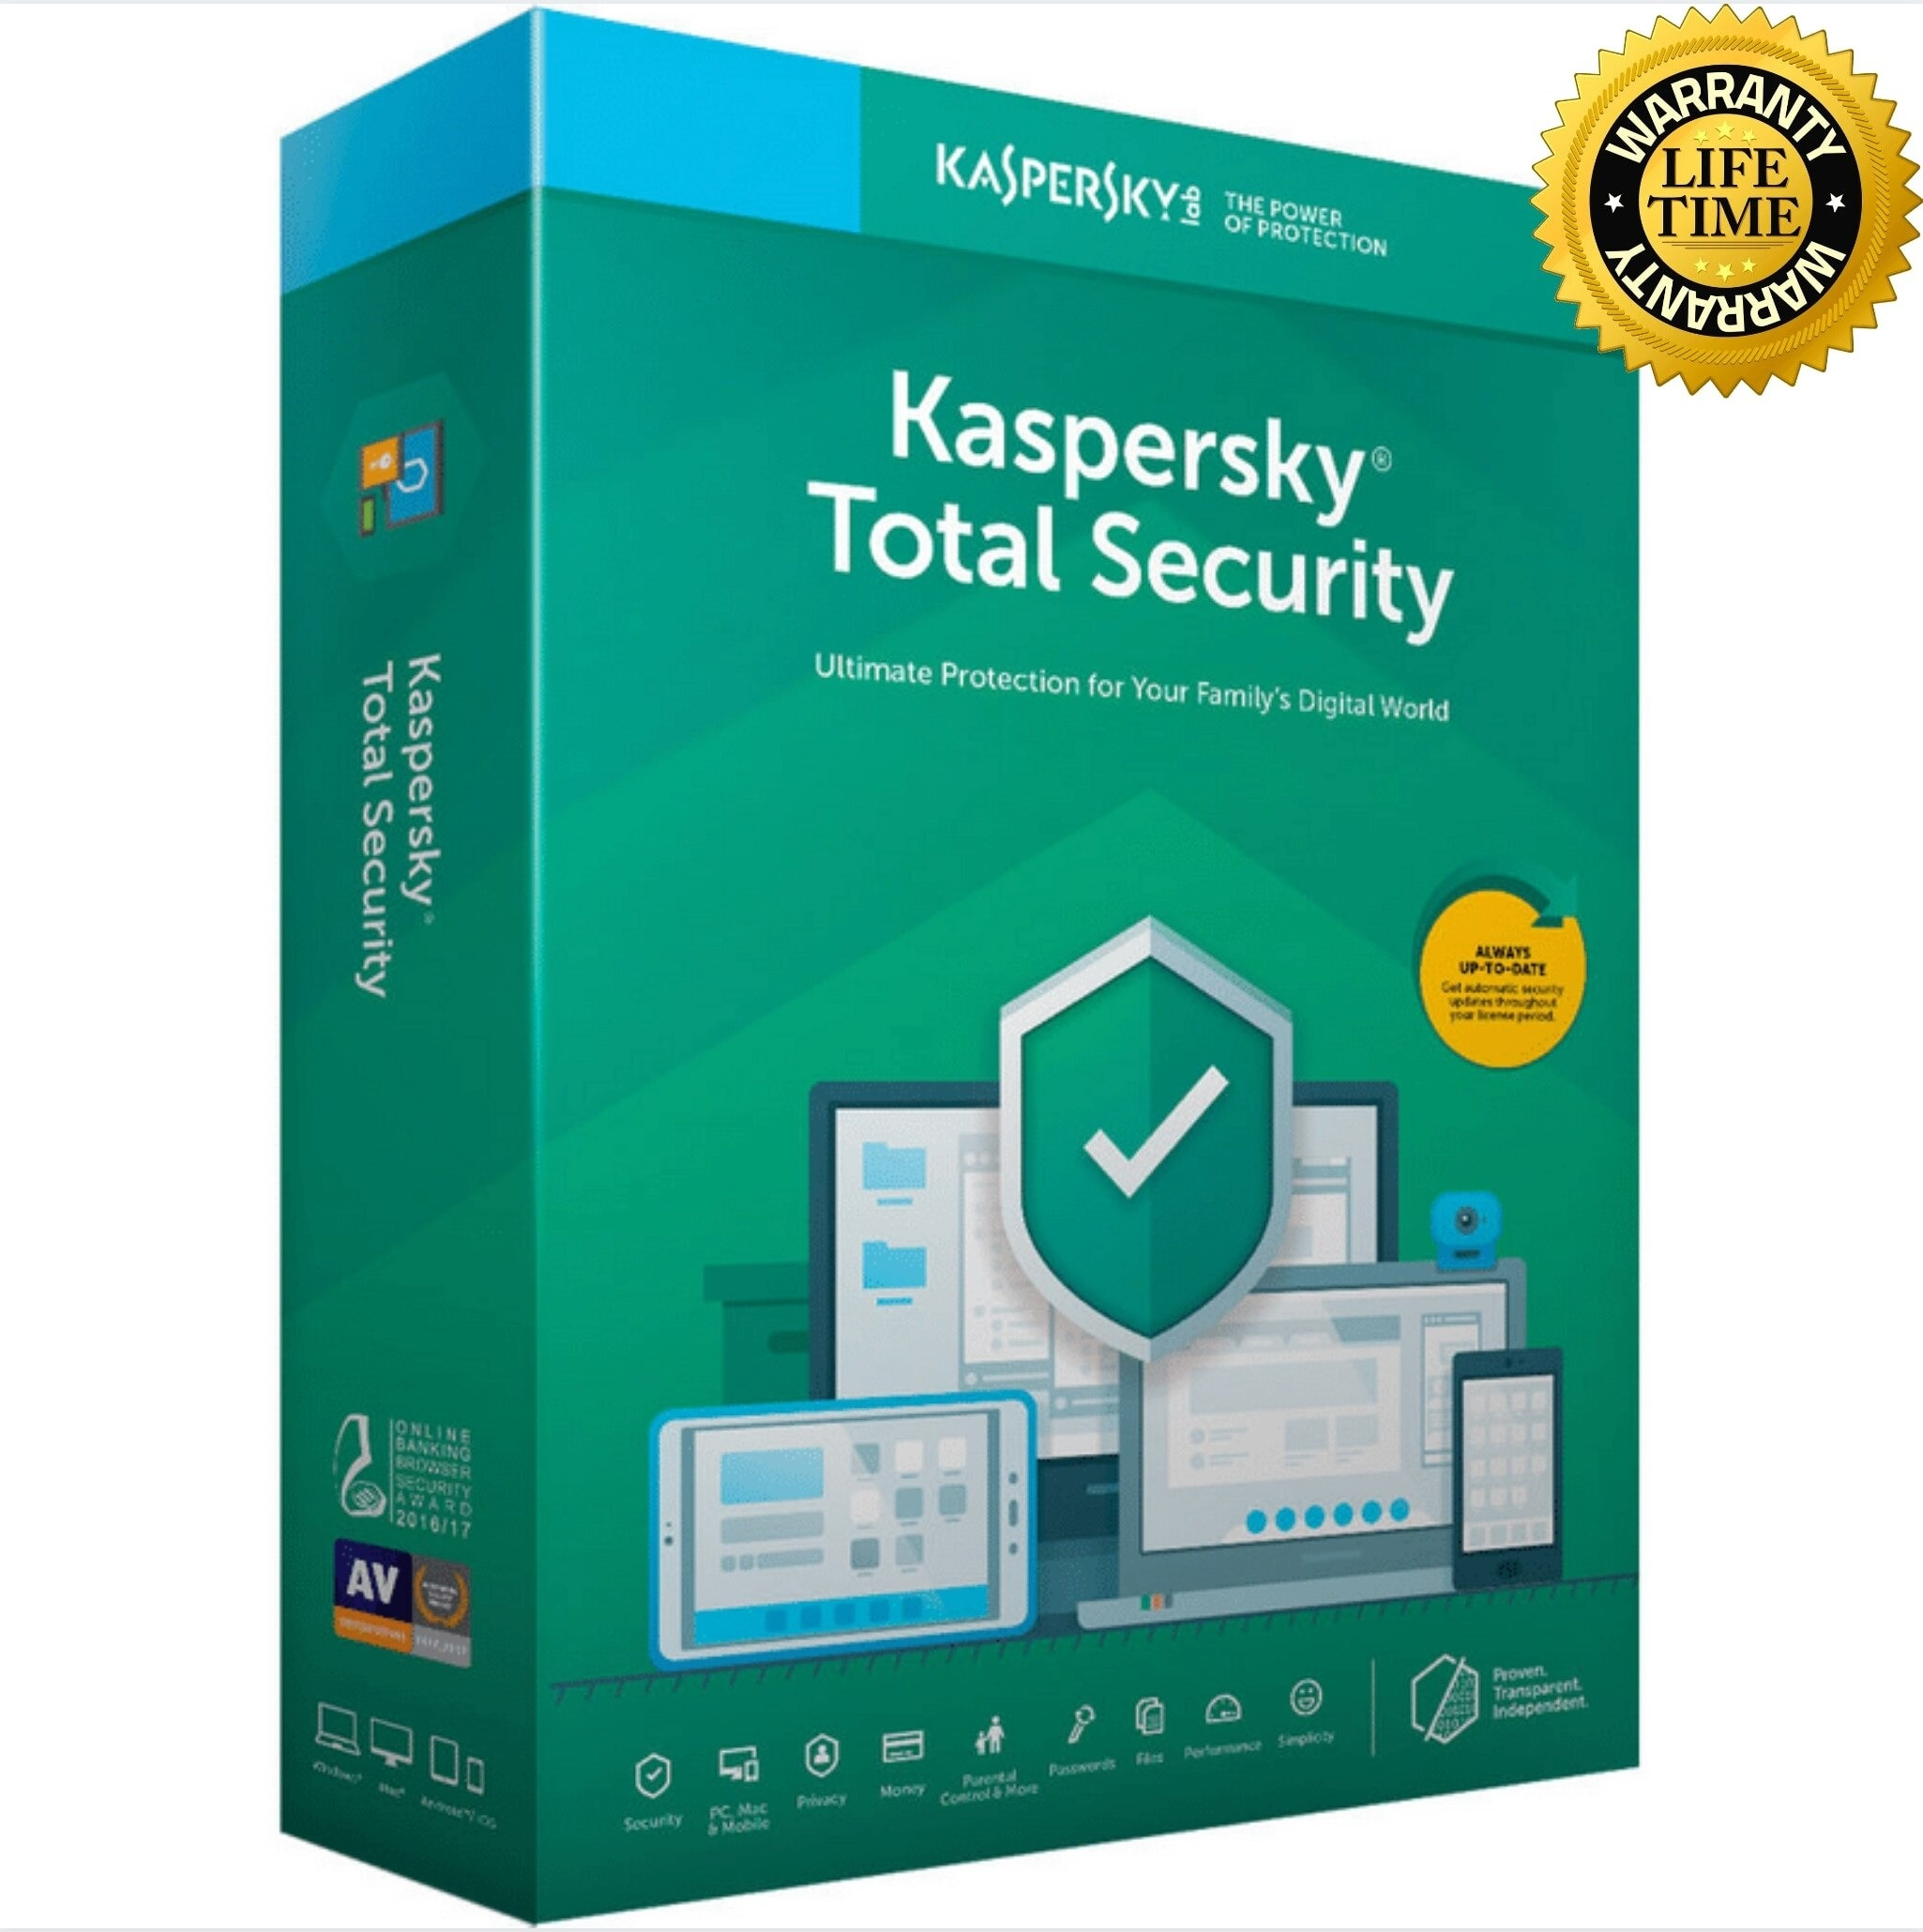 kaspersky TotalSecurity 2021For✅Windows✅- 2 Years Activation